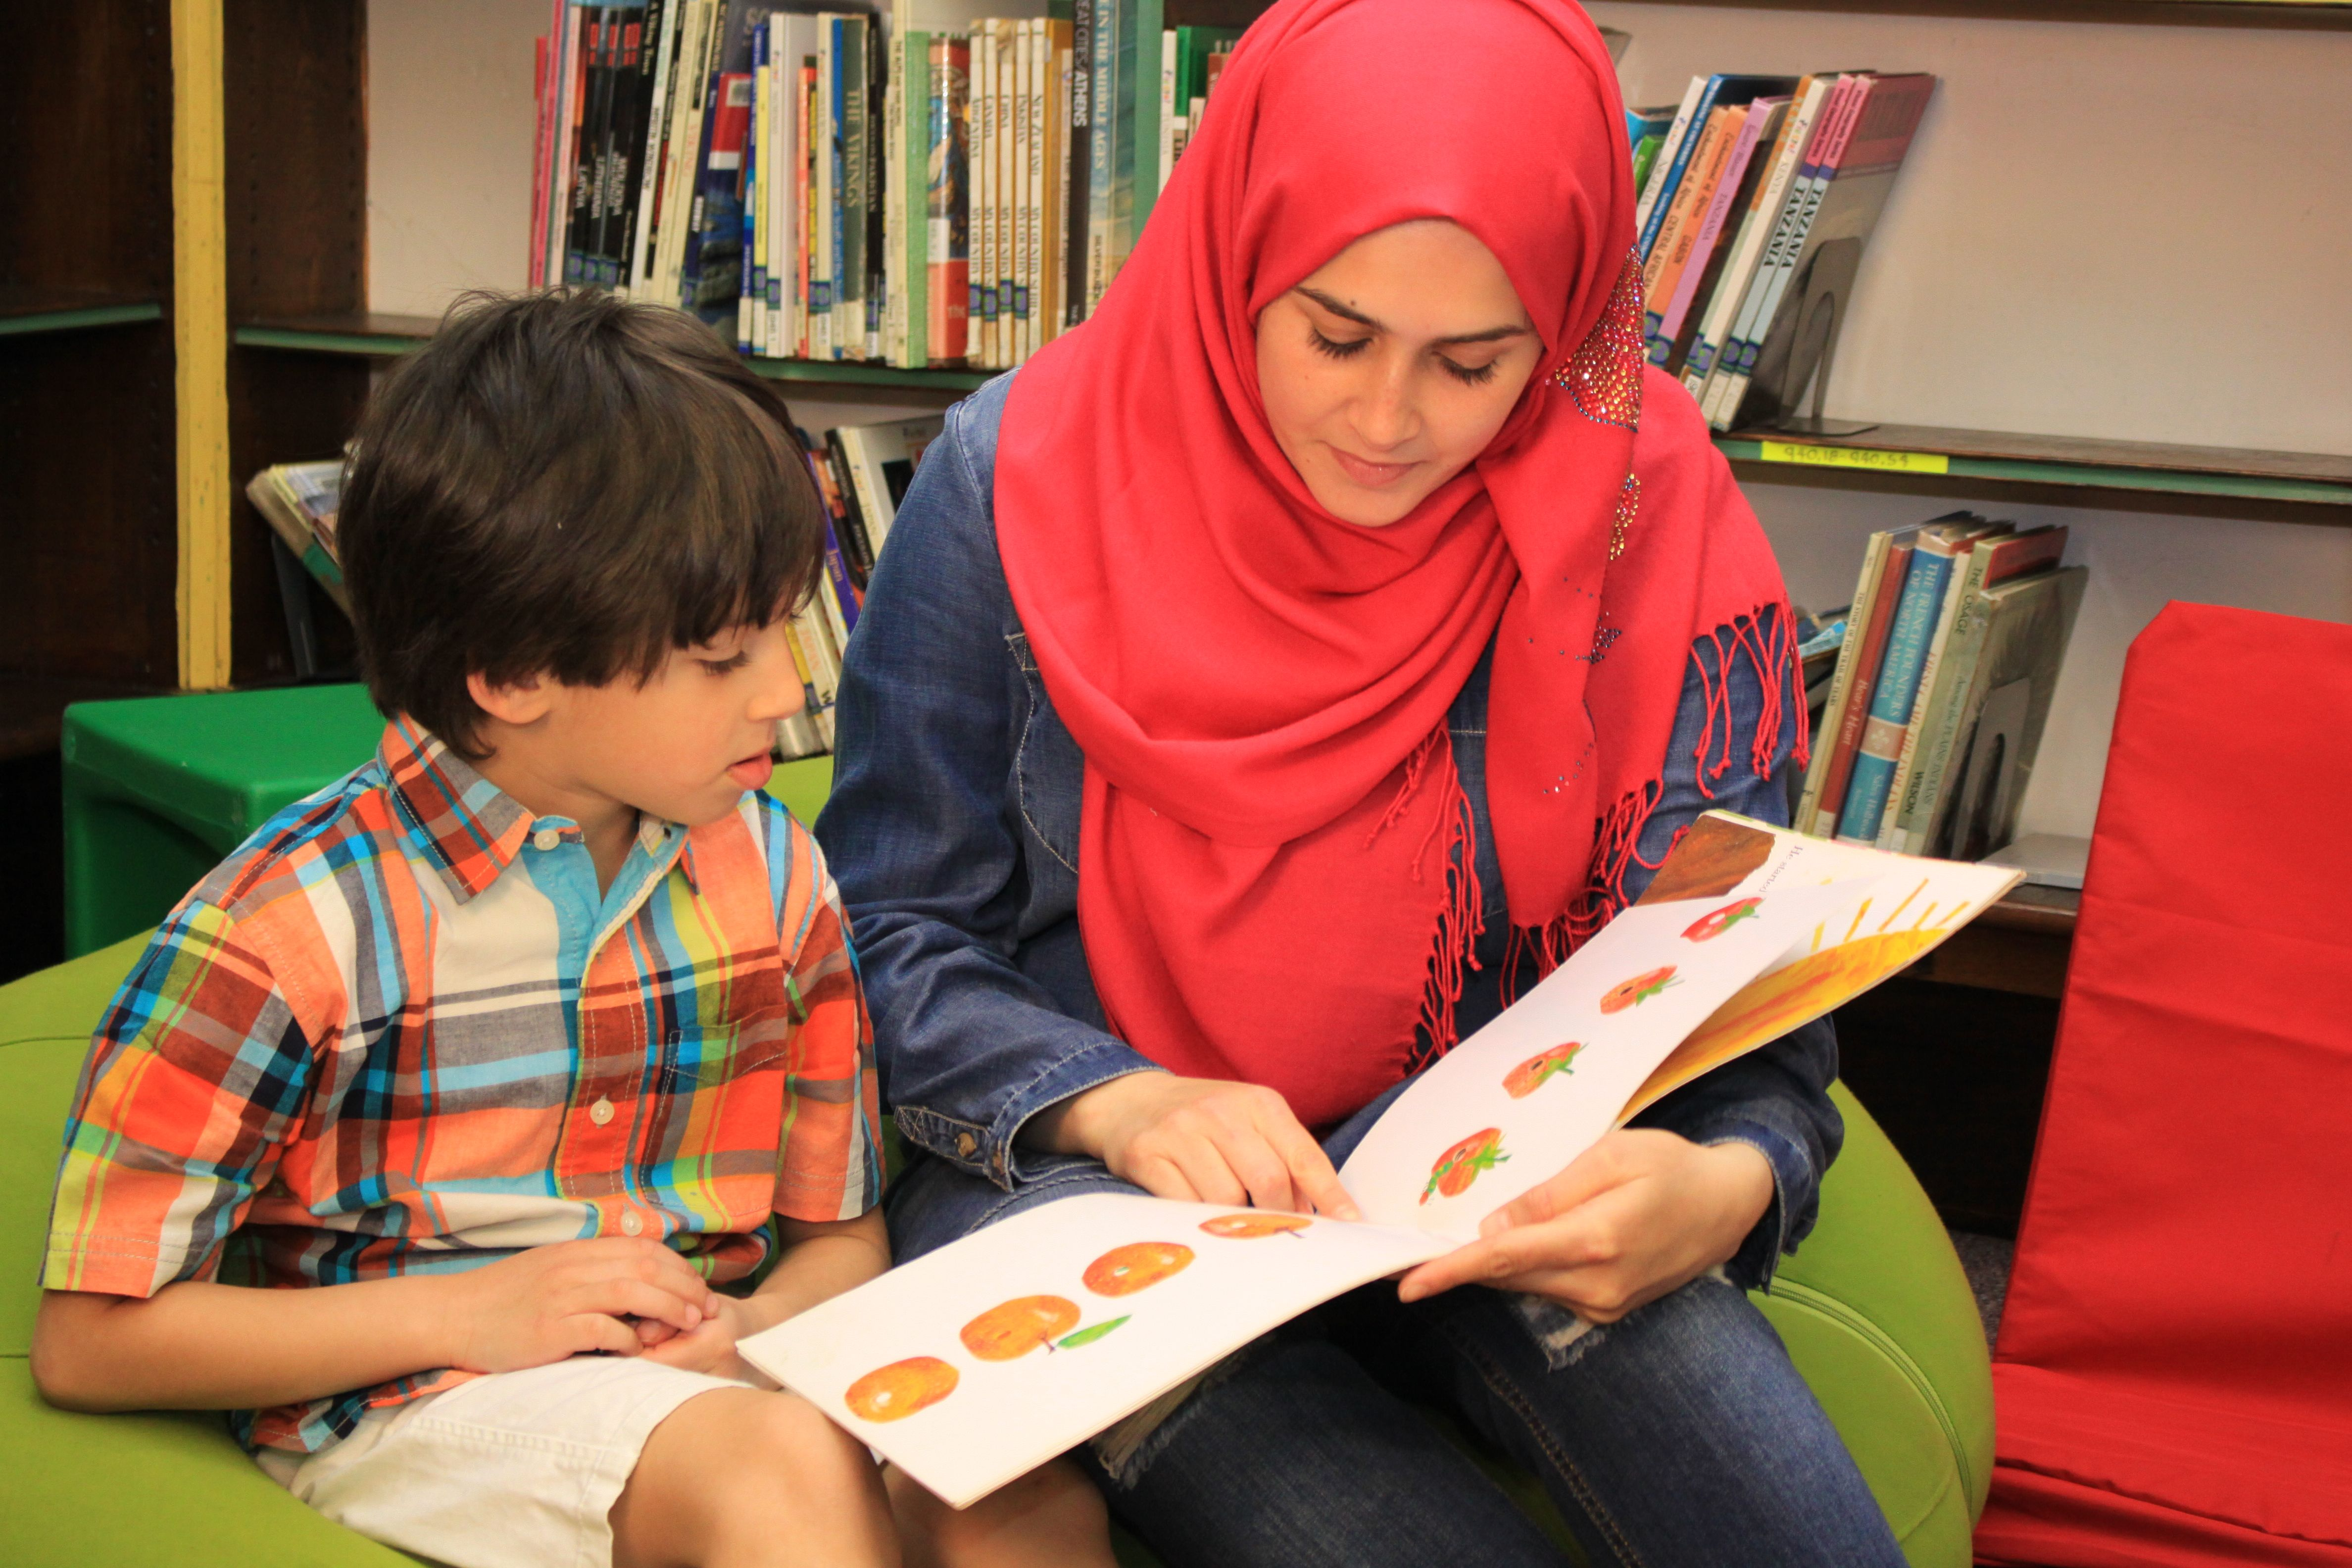 Raising A Reader Ma - Opening Doors By Opening Books - Parent Engagement For Early Literacy